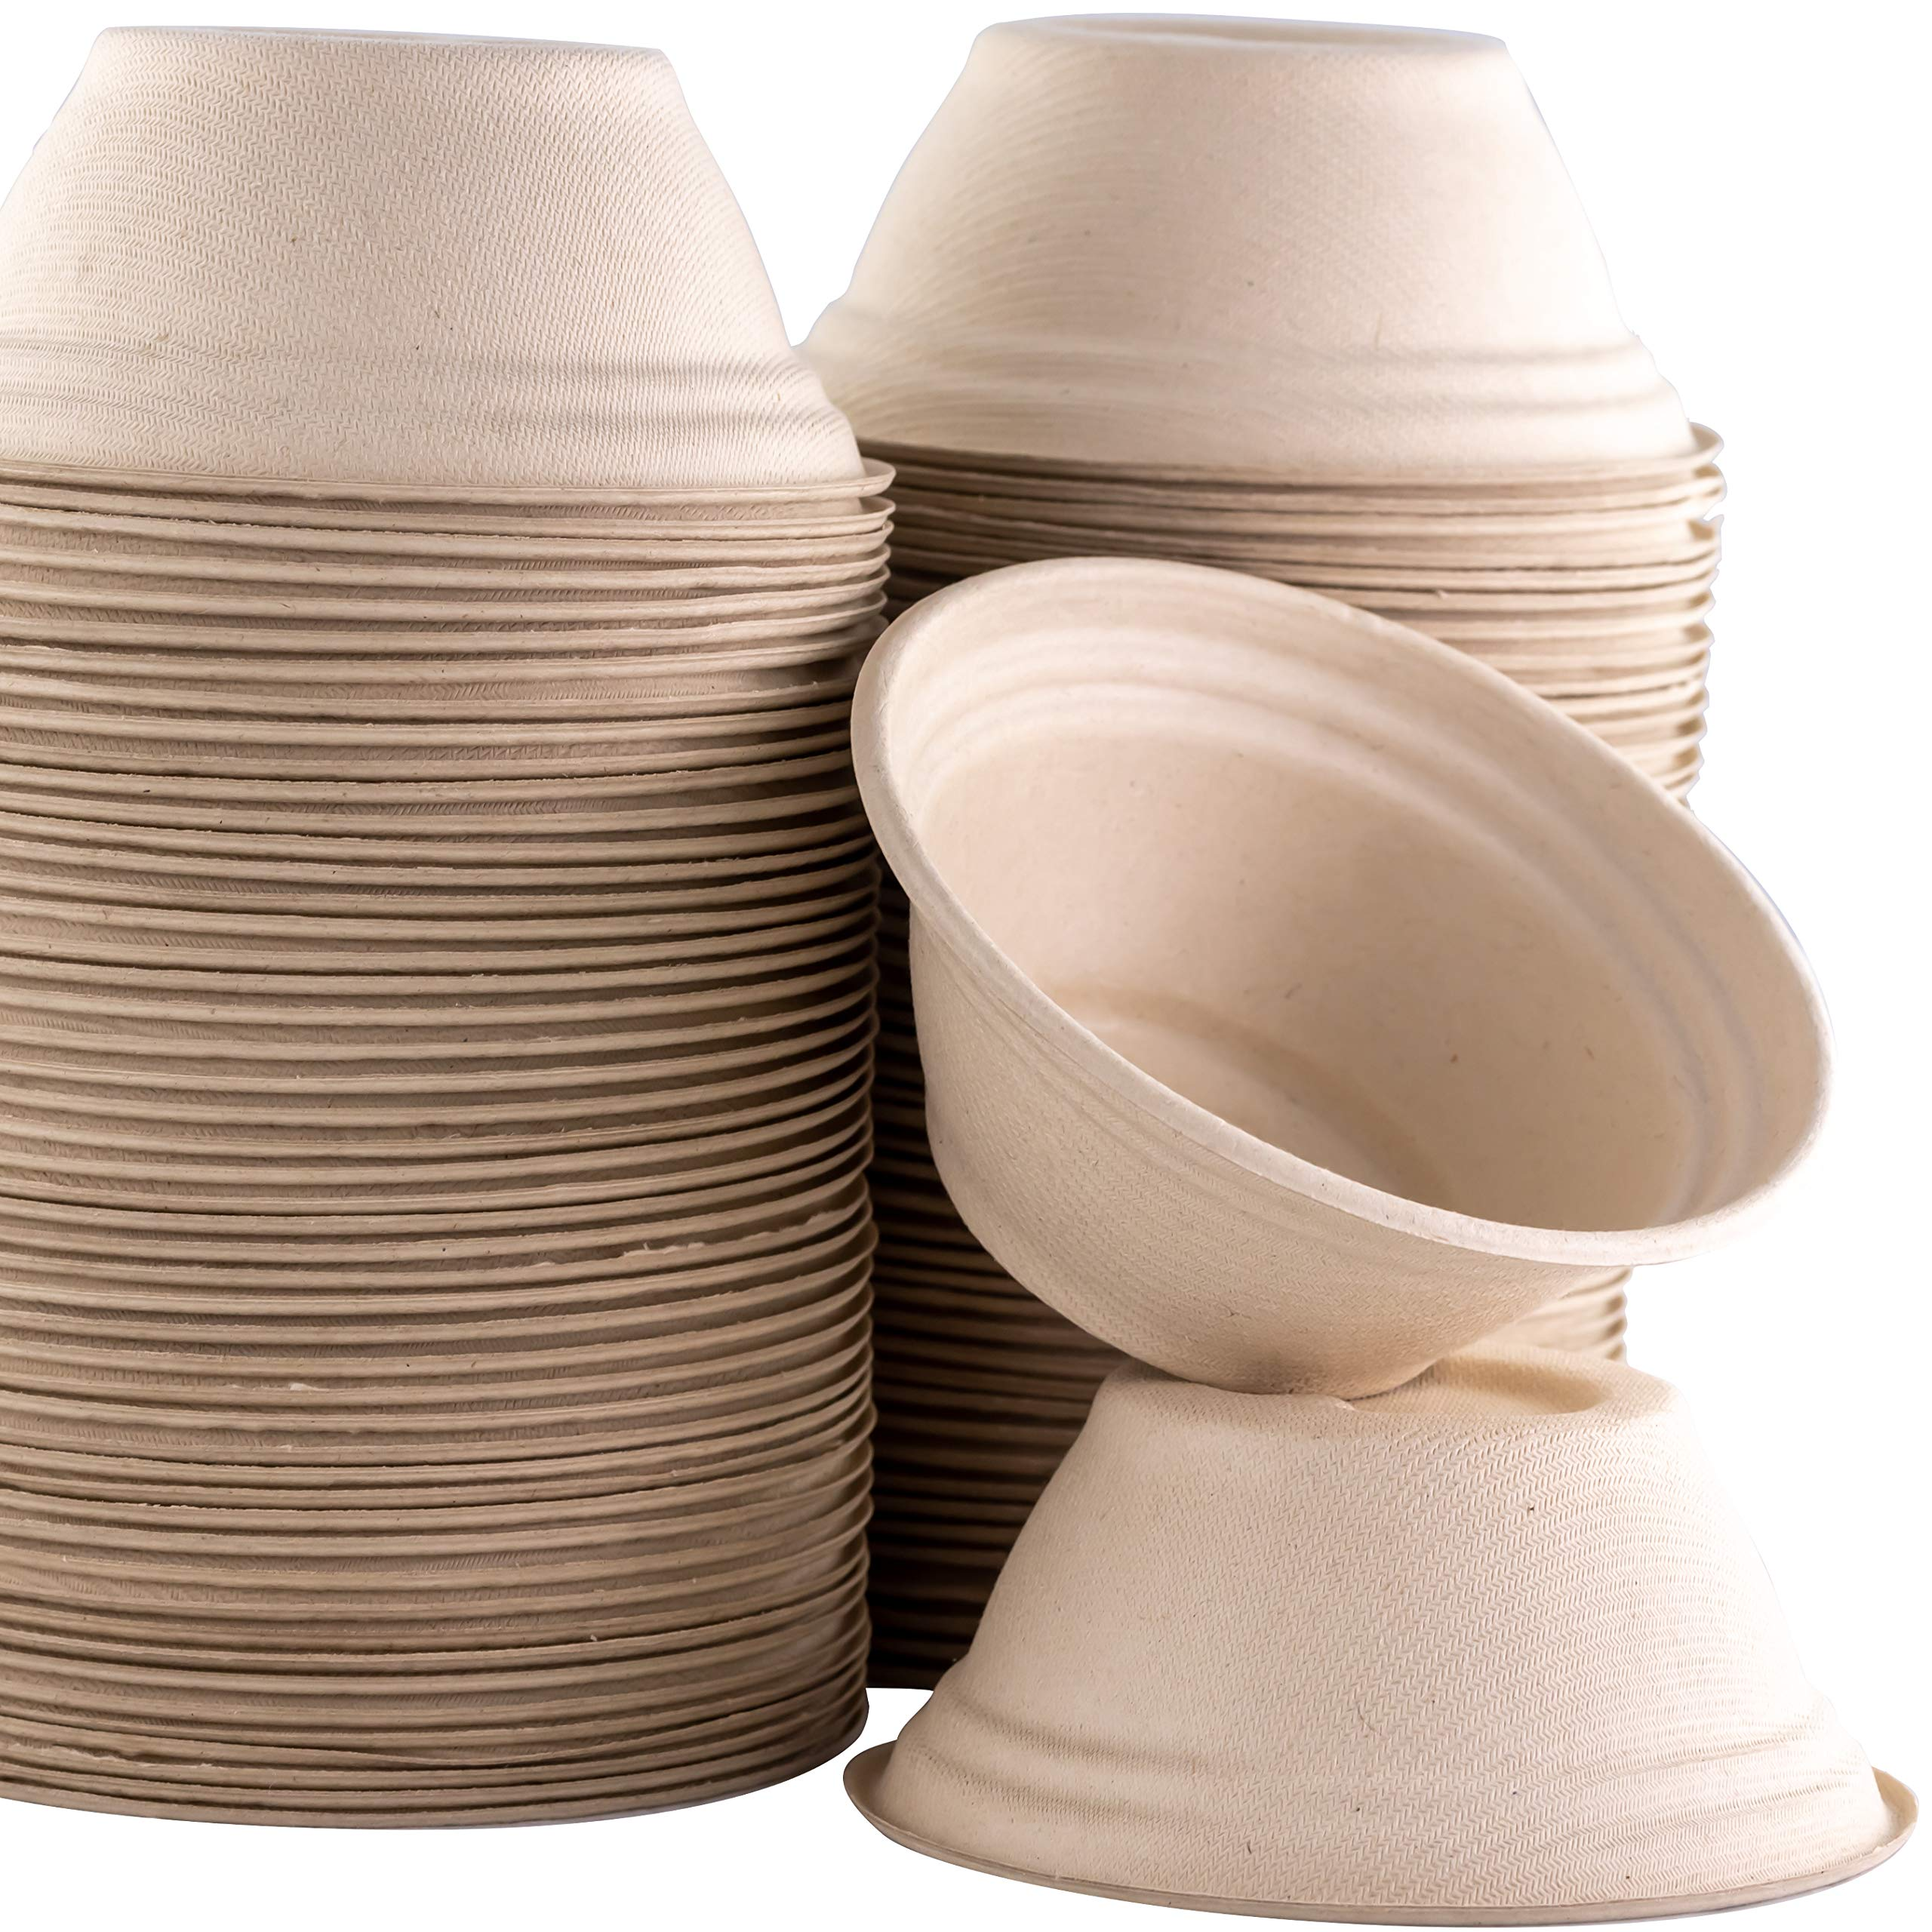 Restaurant-Grade, Biodegradable 8 Oz Bowls Bulk 100 Pk. Great for Ice Cream, Chili or Soup. Disposable, Compostable Wheatstraw Bowls are Allergen-Free, Leakproof and Microwave Safe for Hot or Cold Use